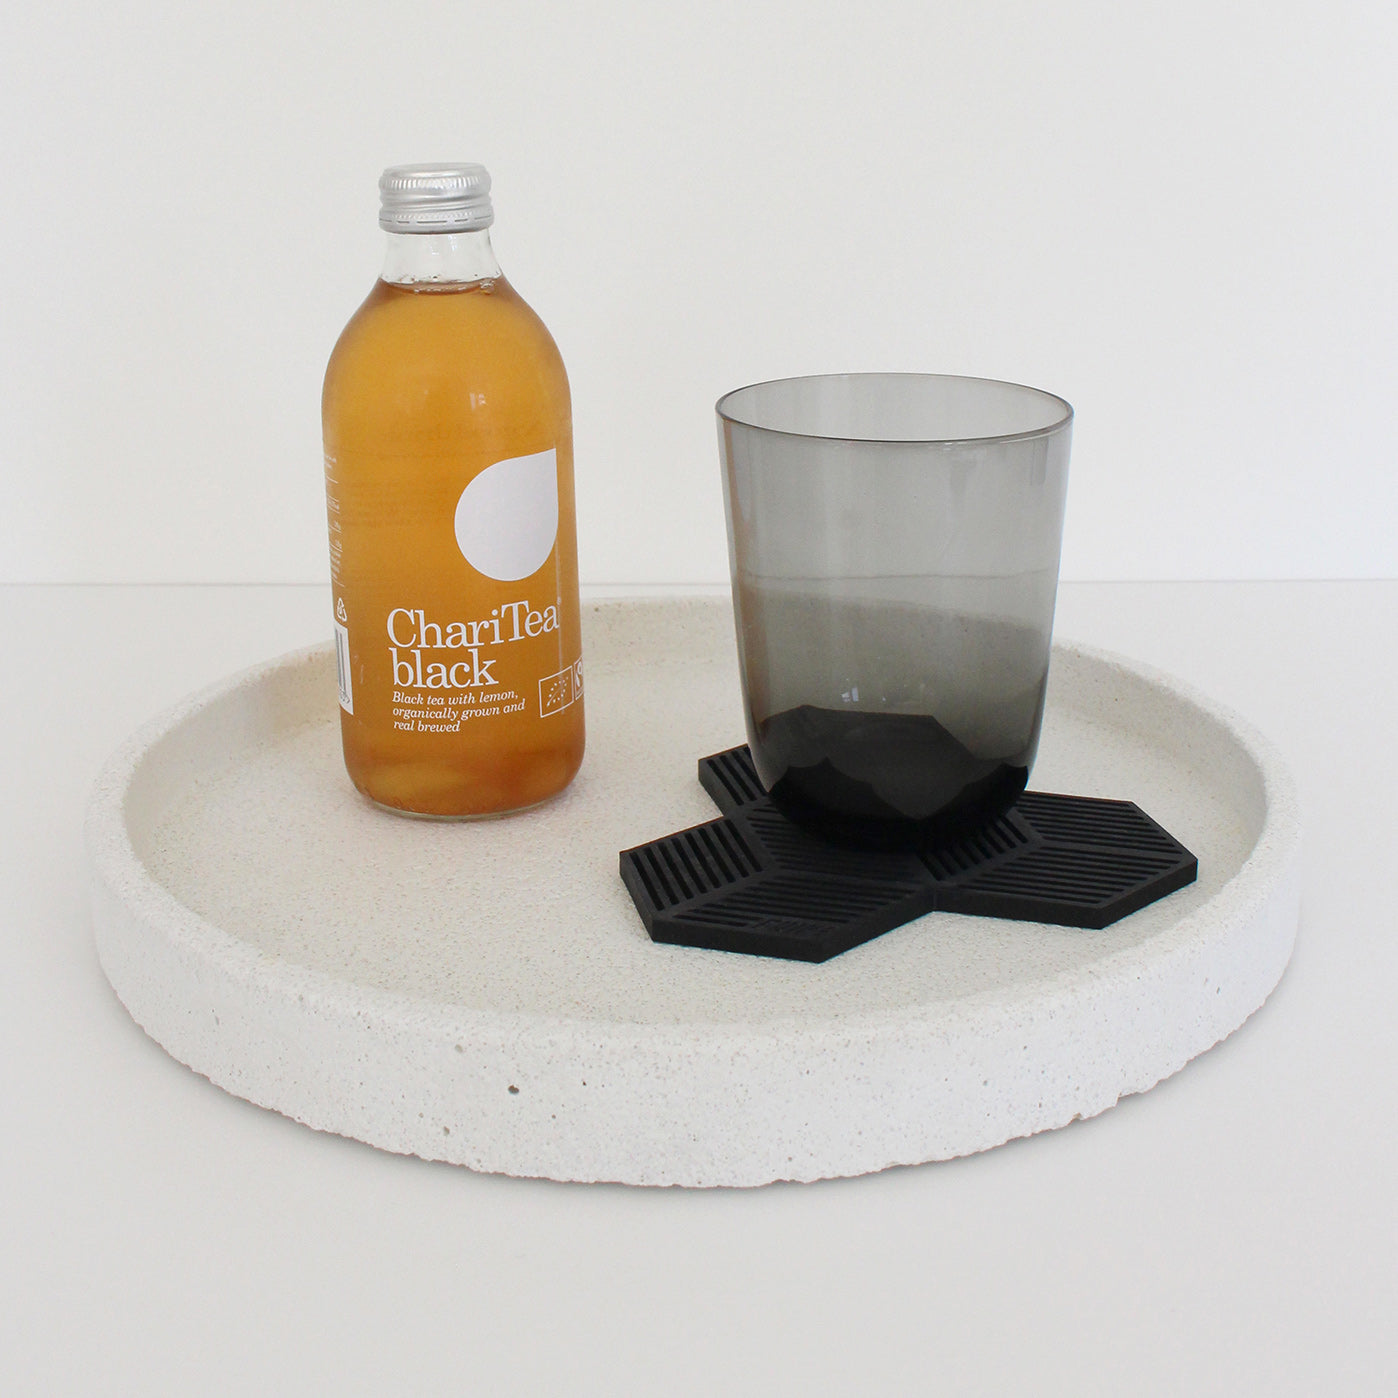 Bottle of ice tea and a glass on a white concrete tray